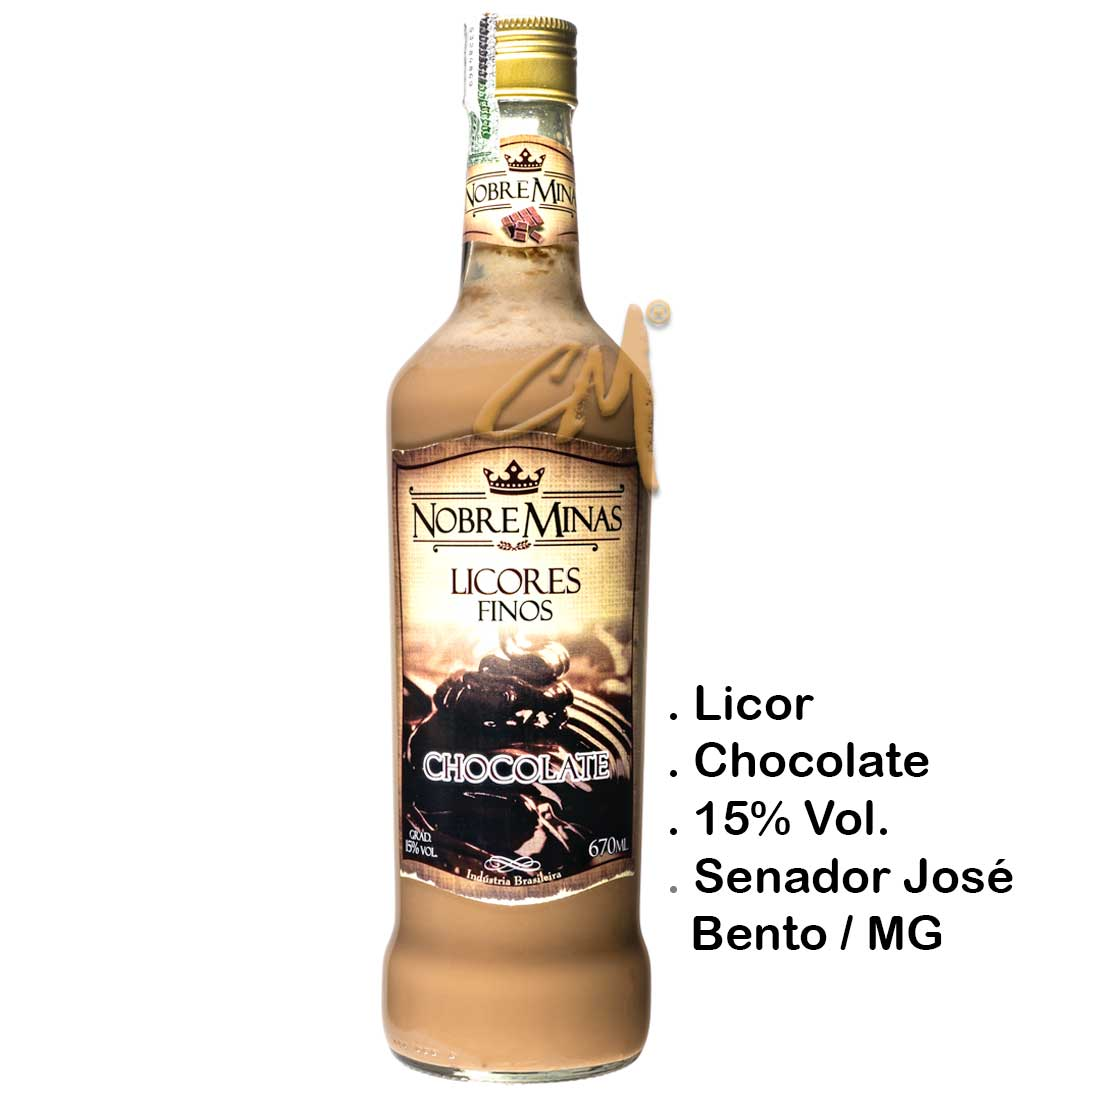 Licor de Chocolate Nobre Minas 670 ml (Sen. José Bento - MG)